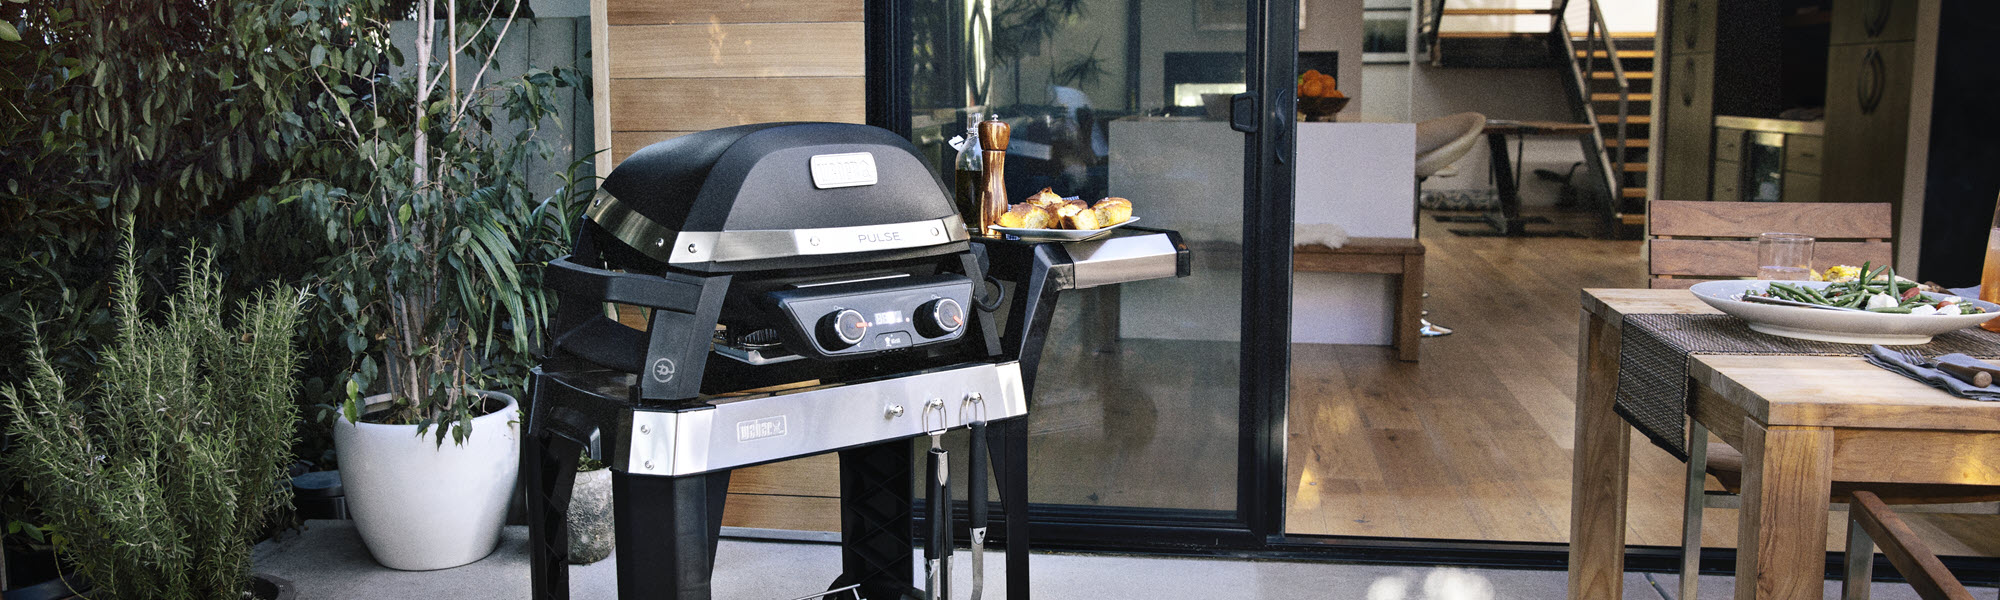 Weber Electric Range BBQ - The Outdoor Chef